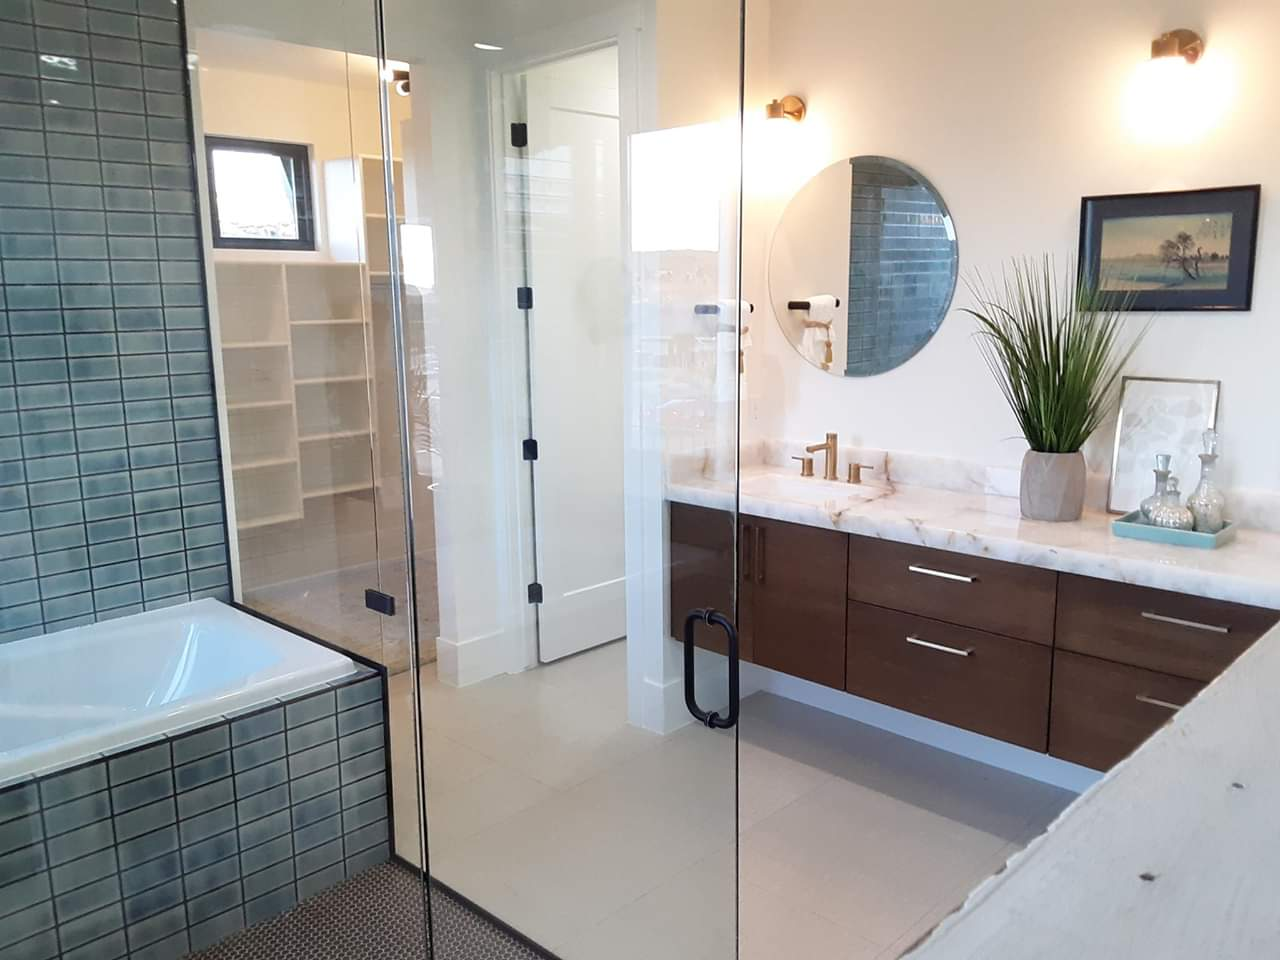 View of modern bathroom, shower, and closet